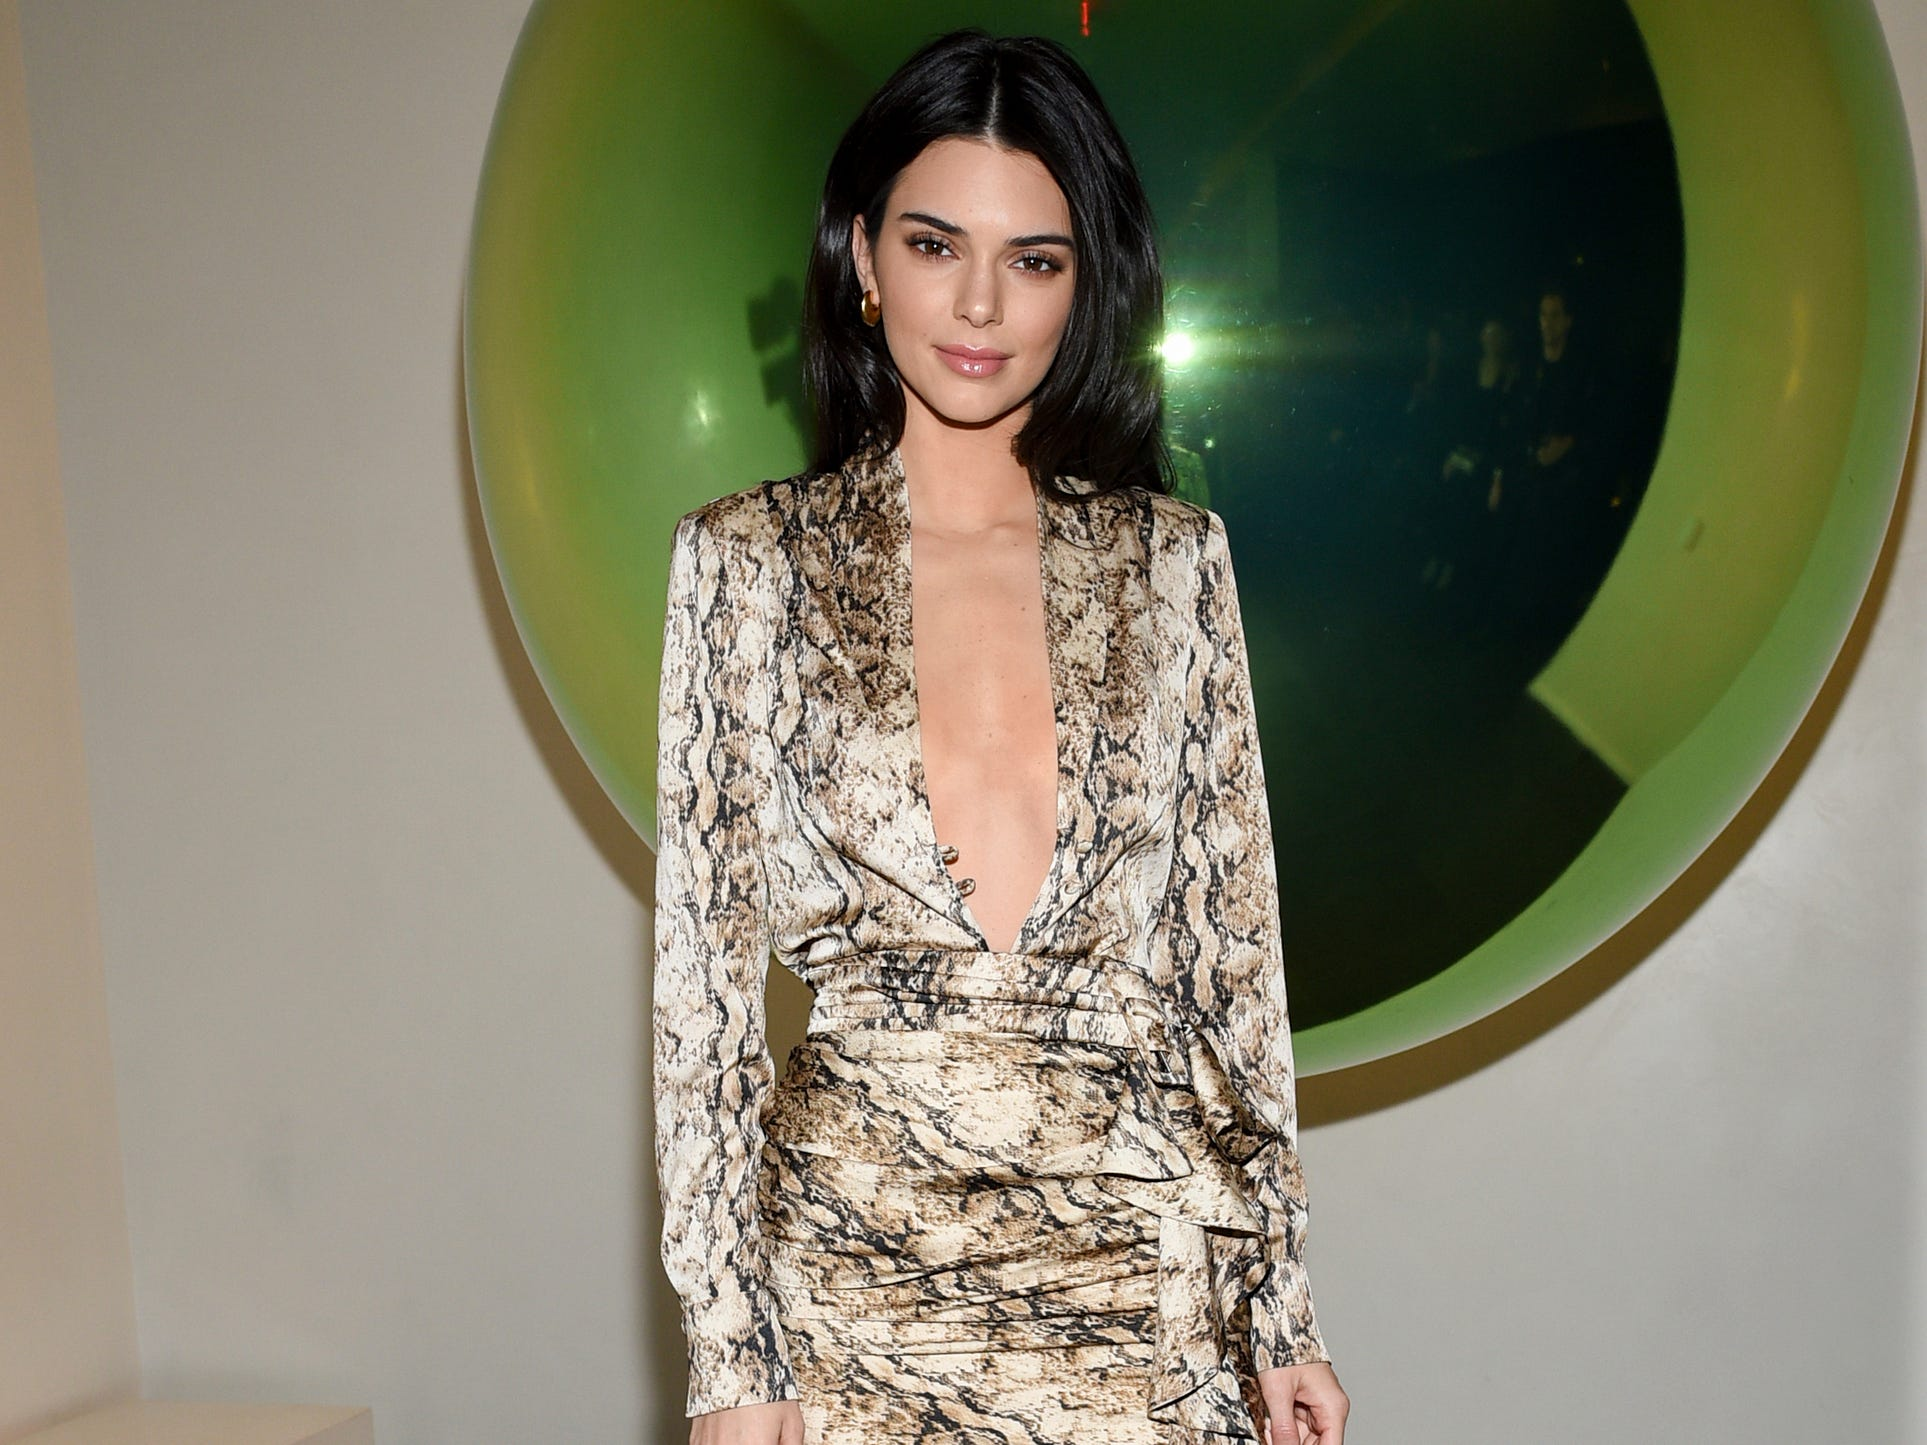 Model Kendall Jenner attends the grand opening of The Times Square Edition hotel on Tuesday, March 12, 2019, in New York. (Photo by Evan Agostini/Invision/AP) ORG XMIT: NYEA110